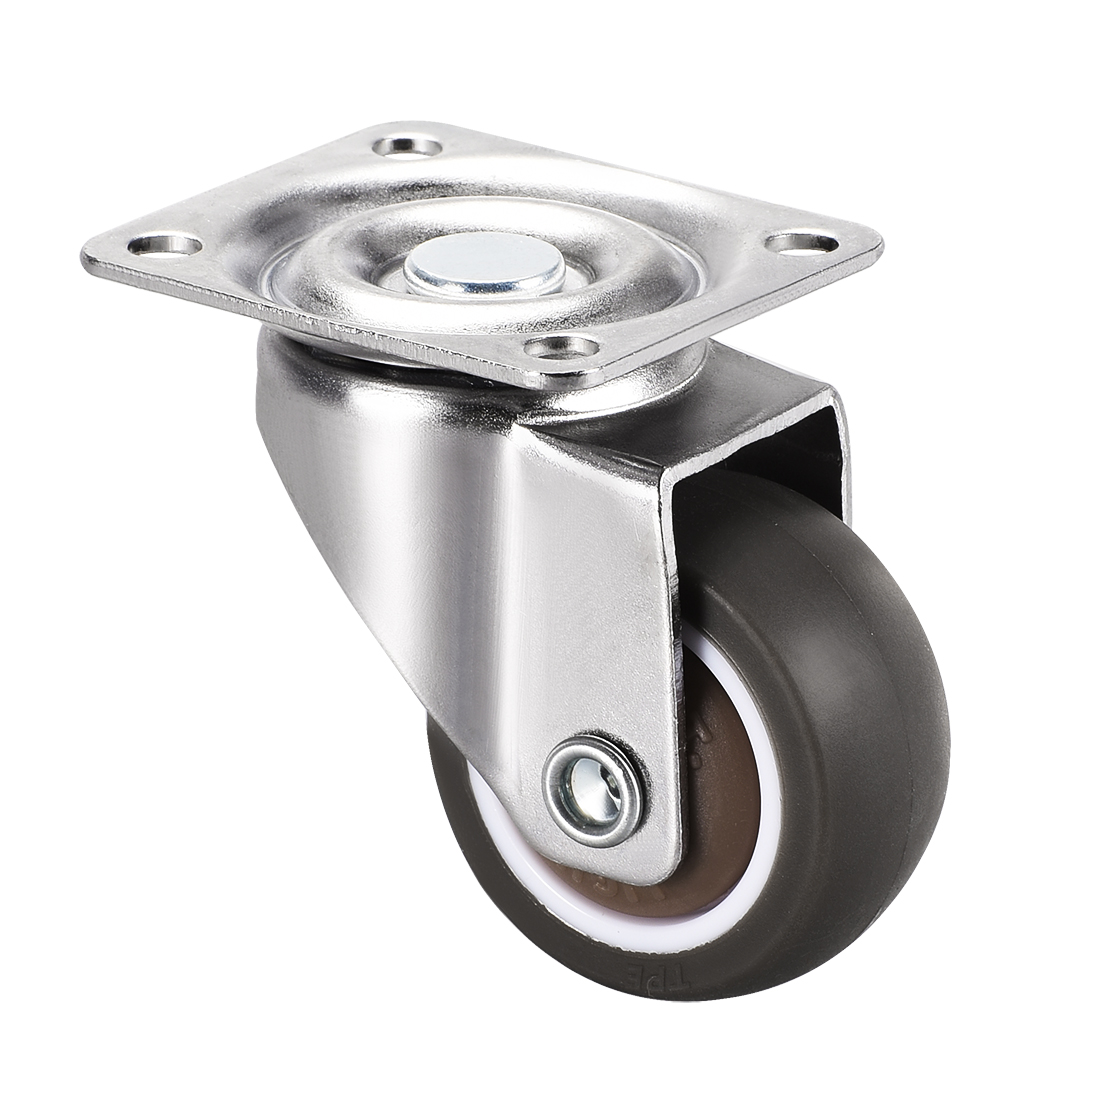 Swivel Caster Wheels 1.5 inch Dia TPR Caster Top Plate 44lb Capacity